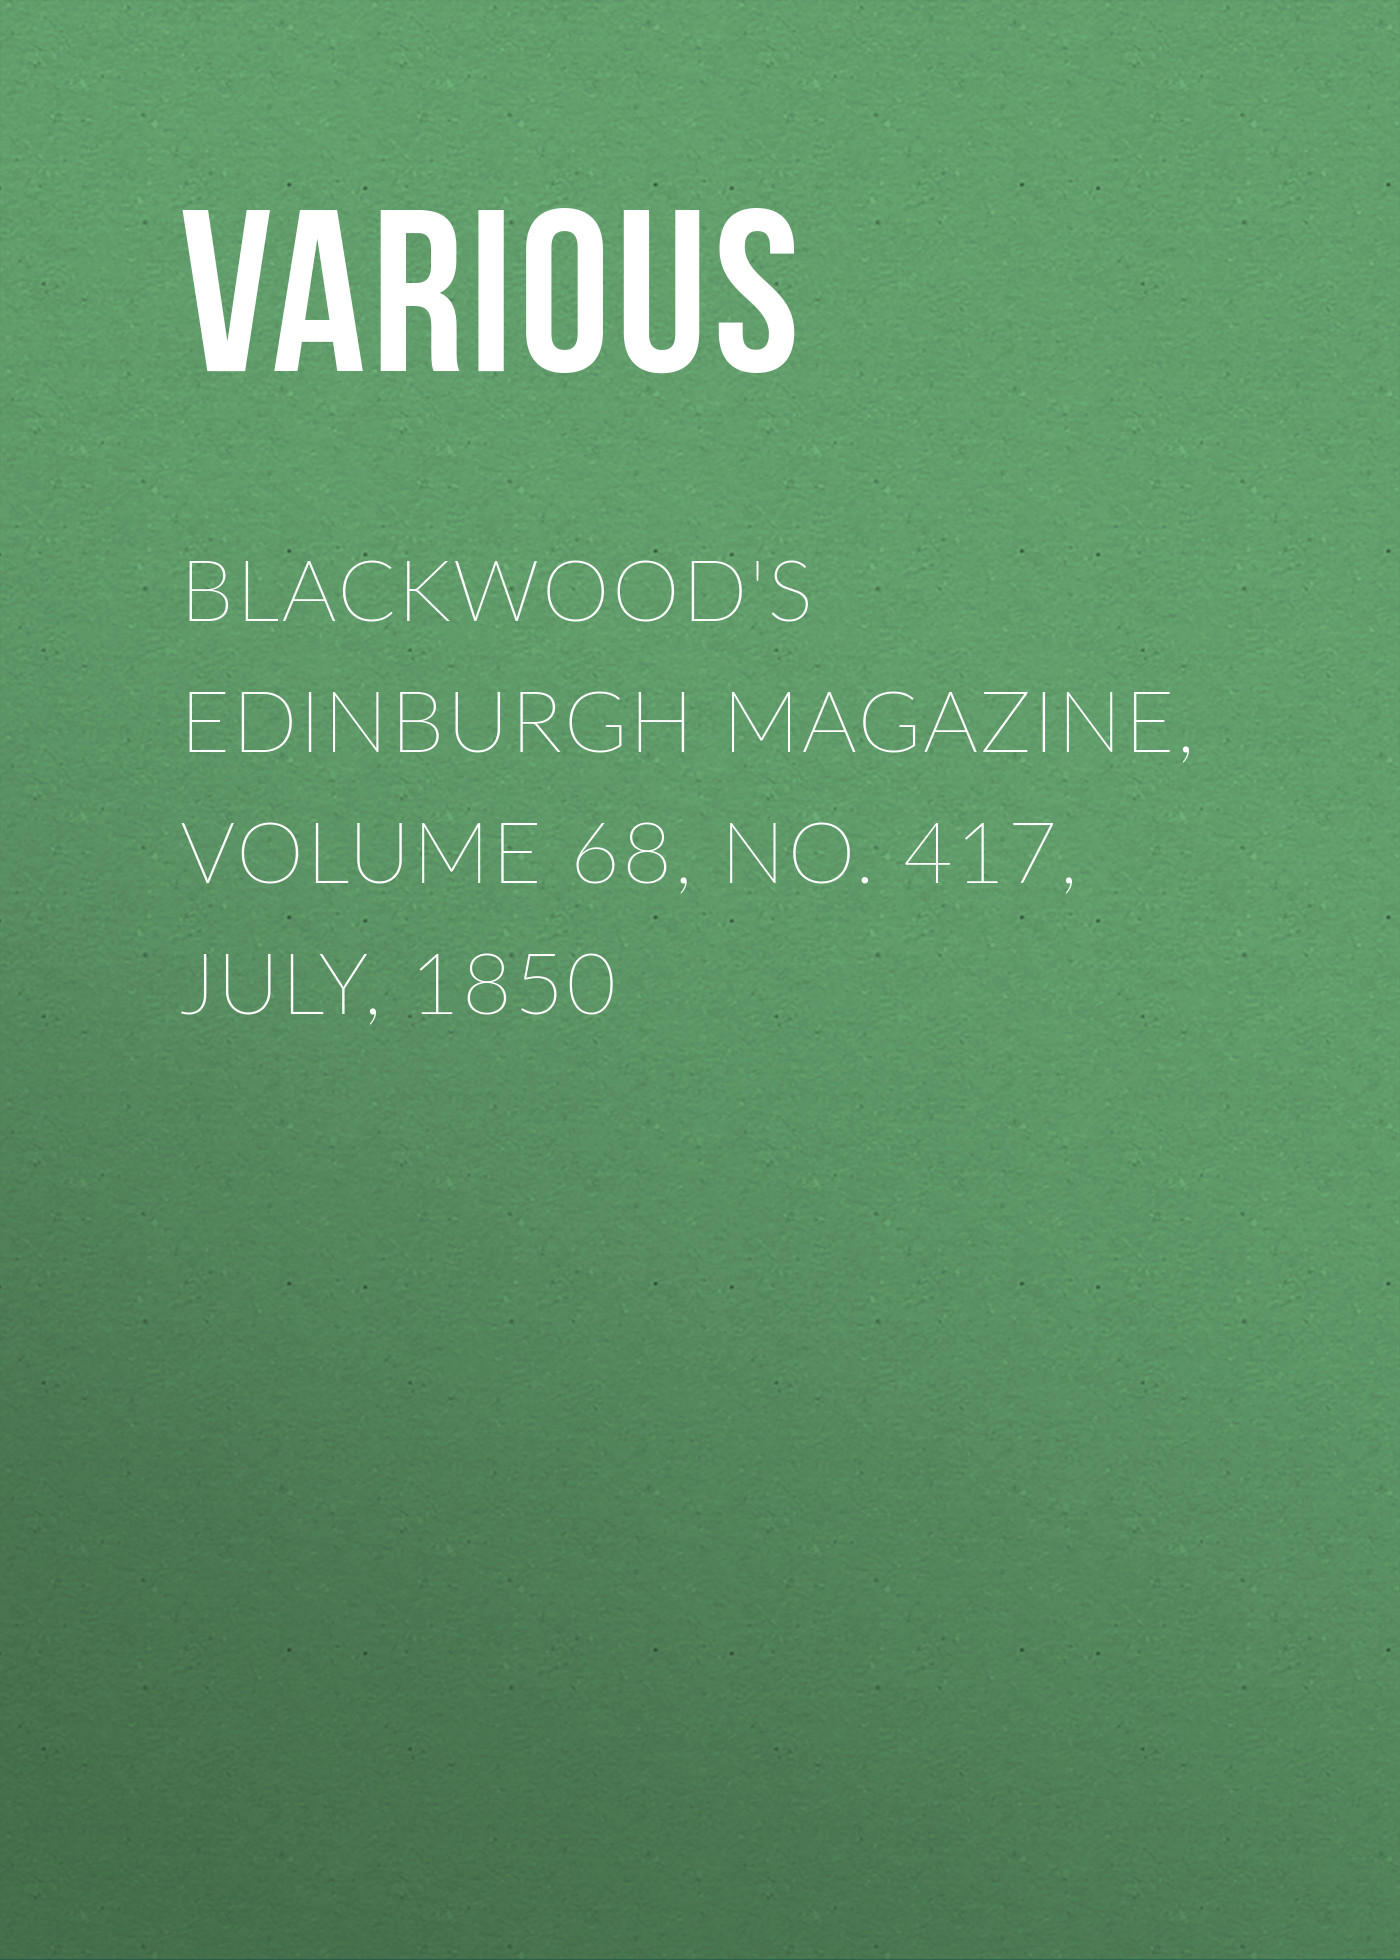 Various Blackwood's Edinburgh Magazine, Volume 68, No. 417, July, 1850 various blackwood s edinburgh magazine volume 67 no 411 january 1850